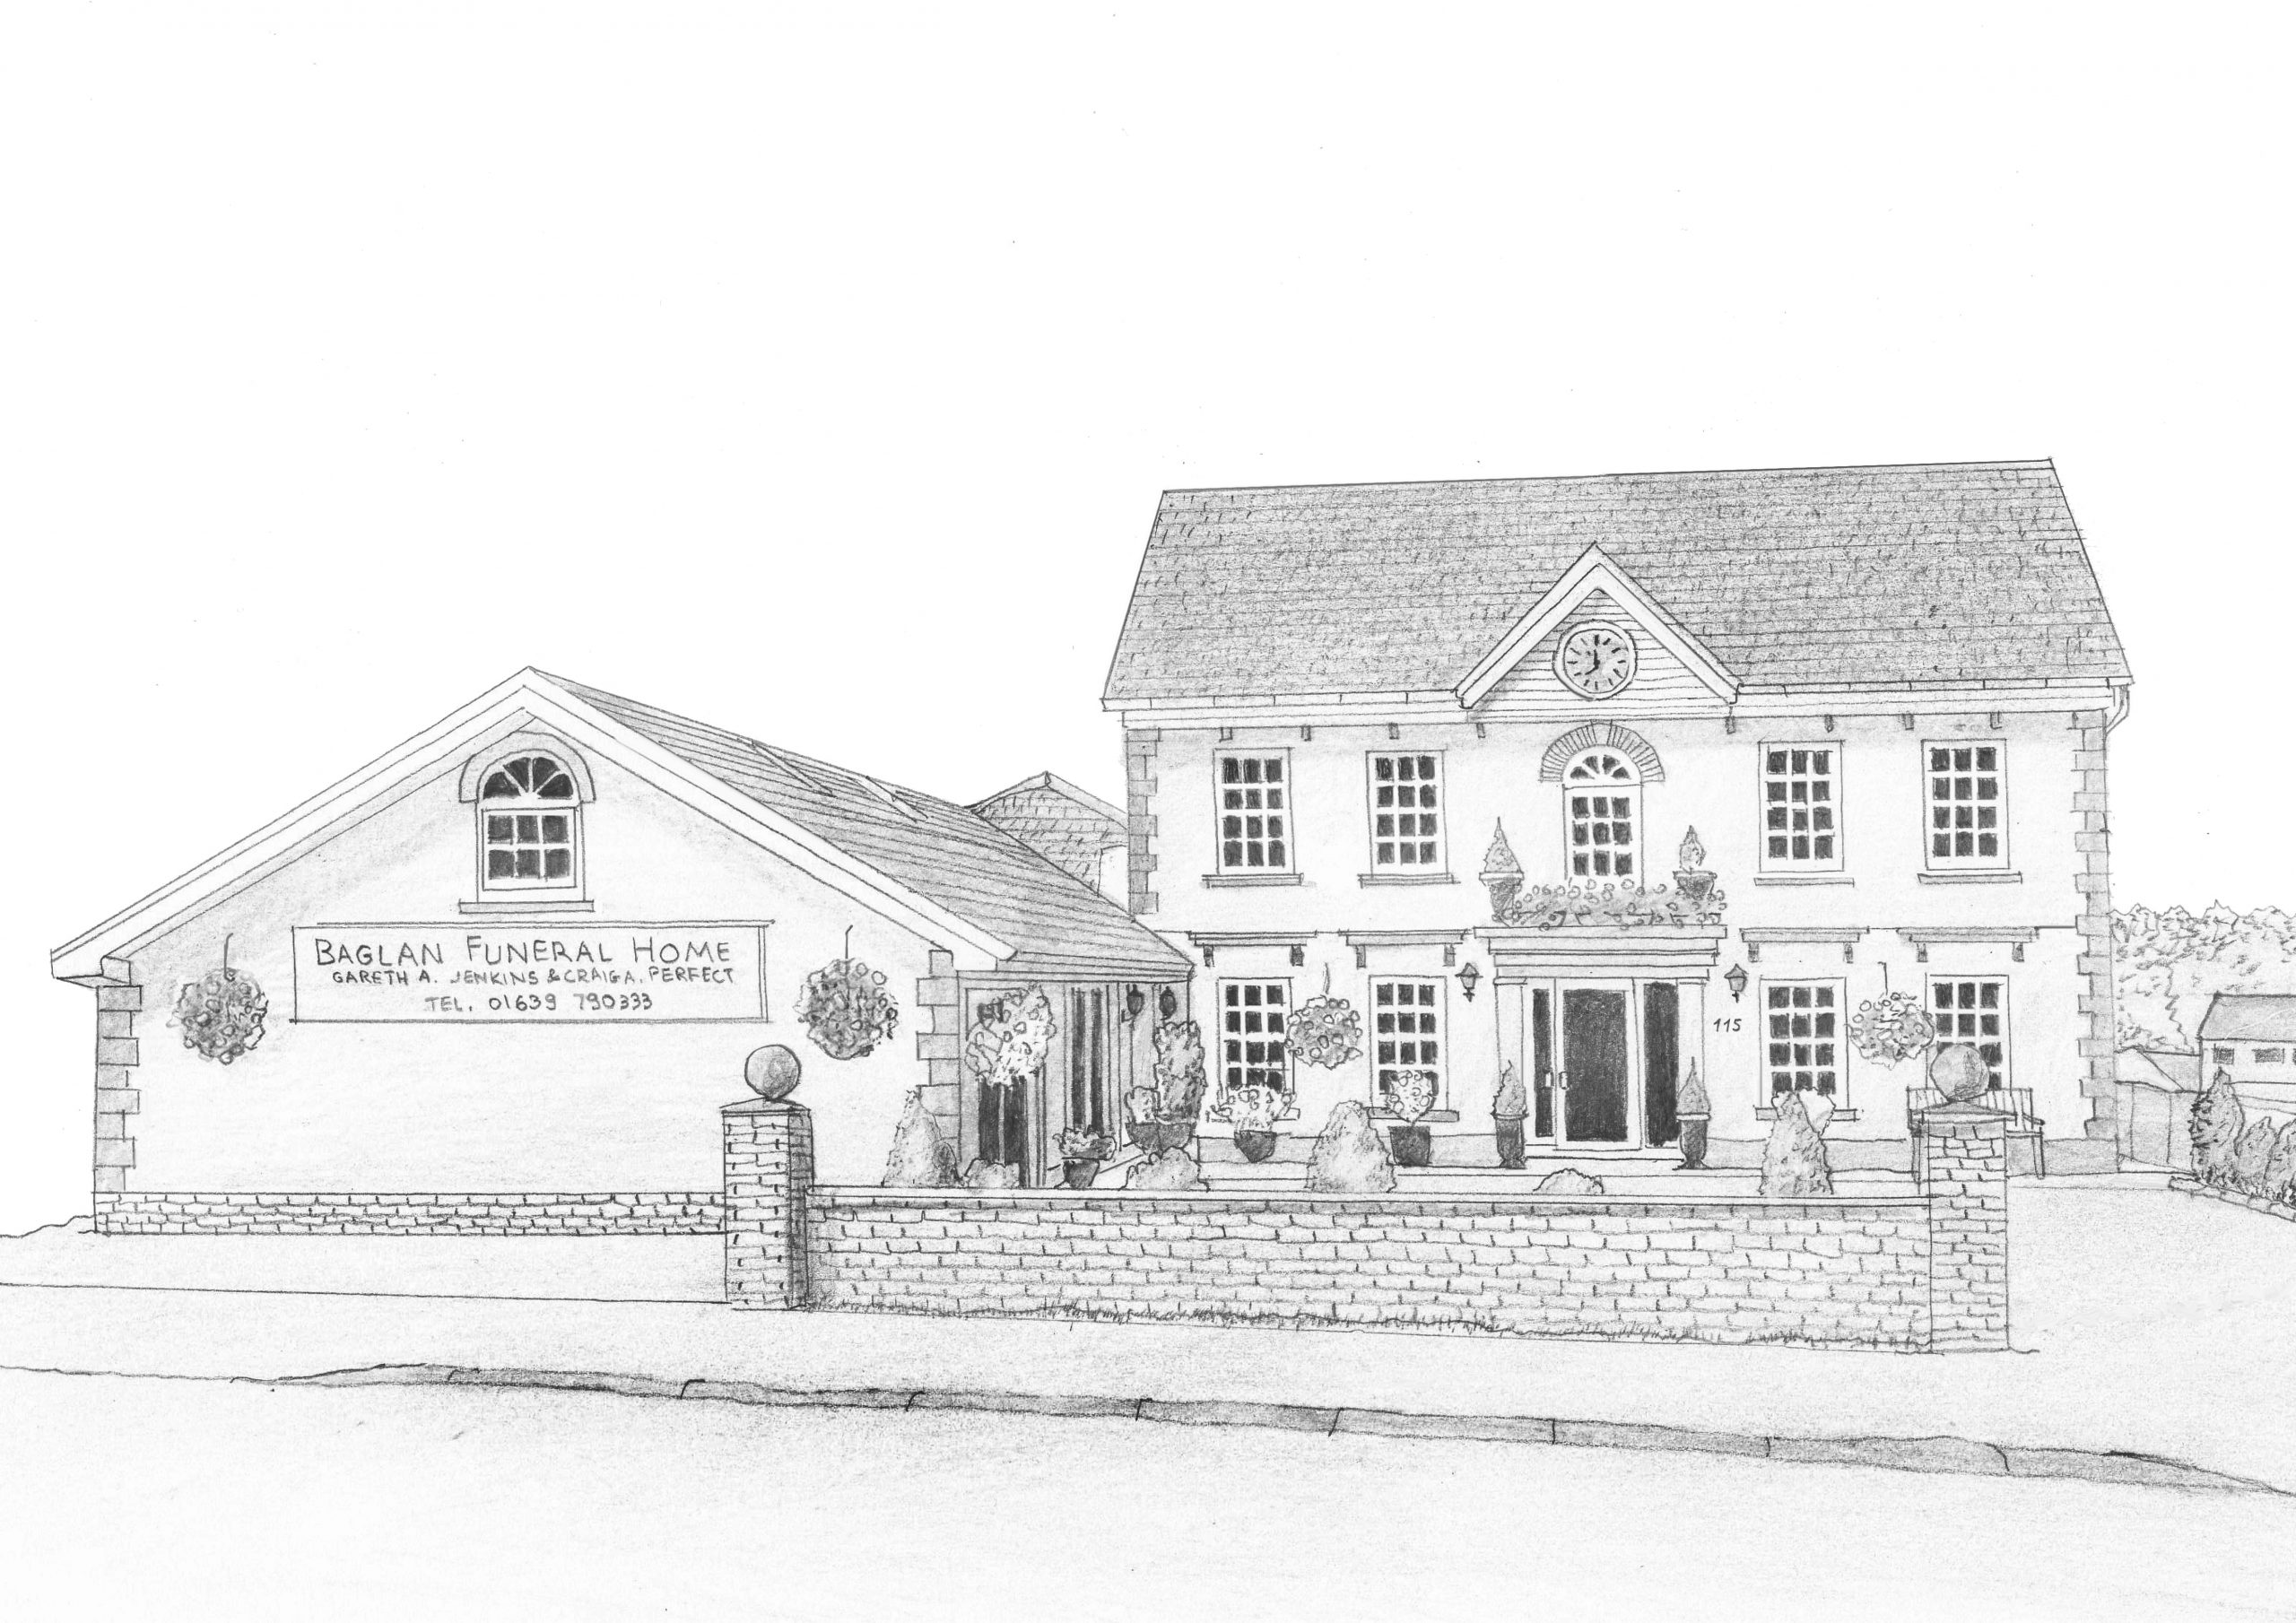 BAGLAN FUNERAL HOME DRAWING - revisioned 2